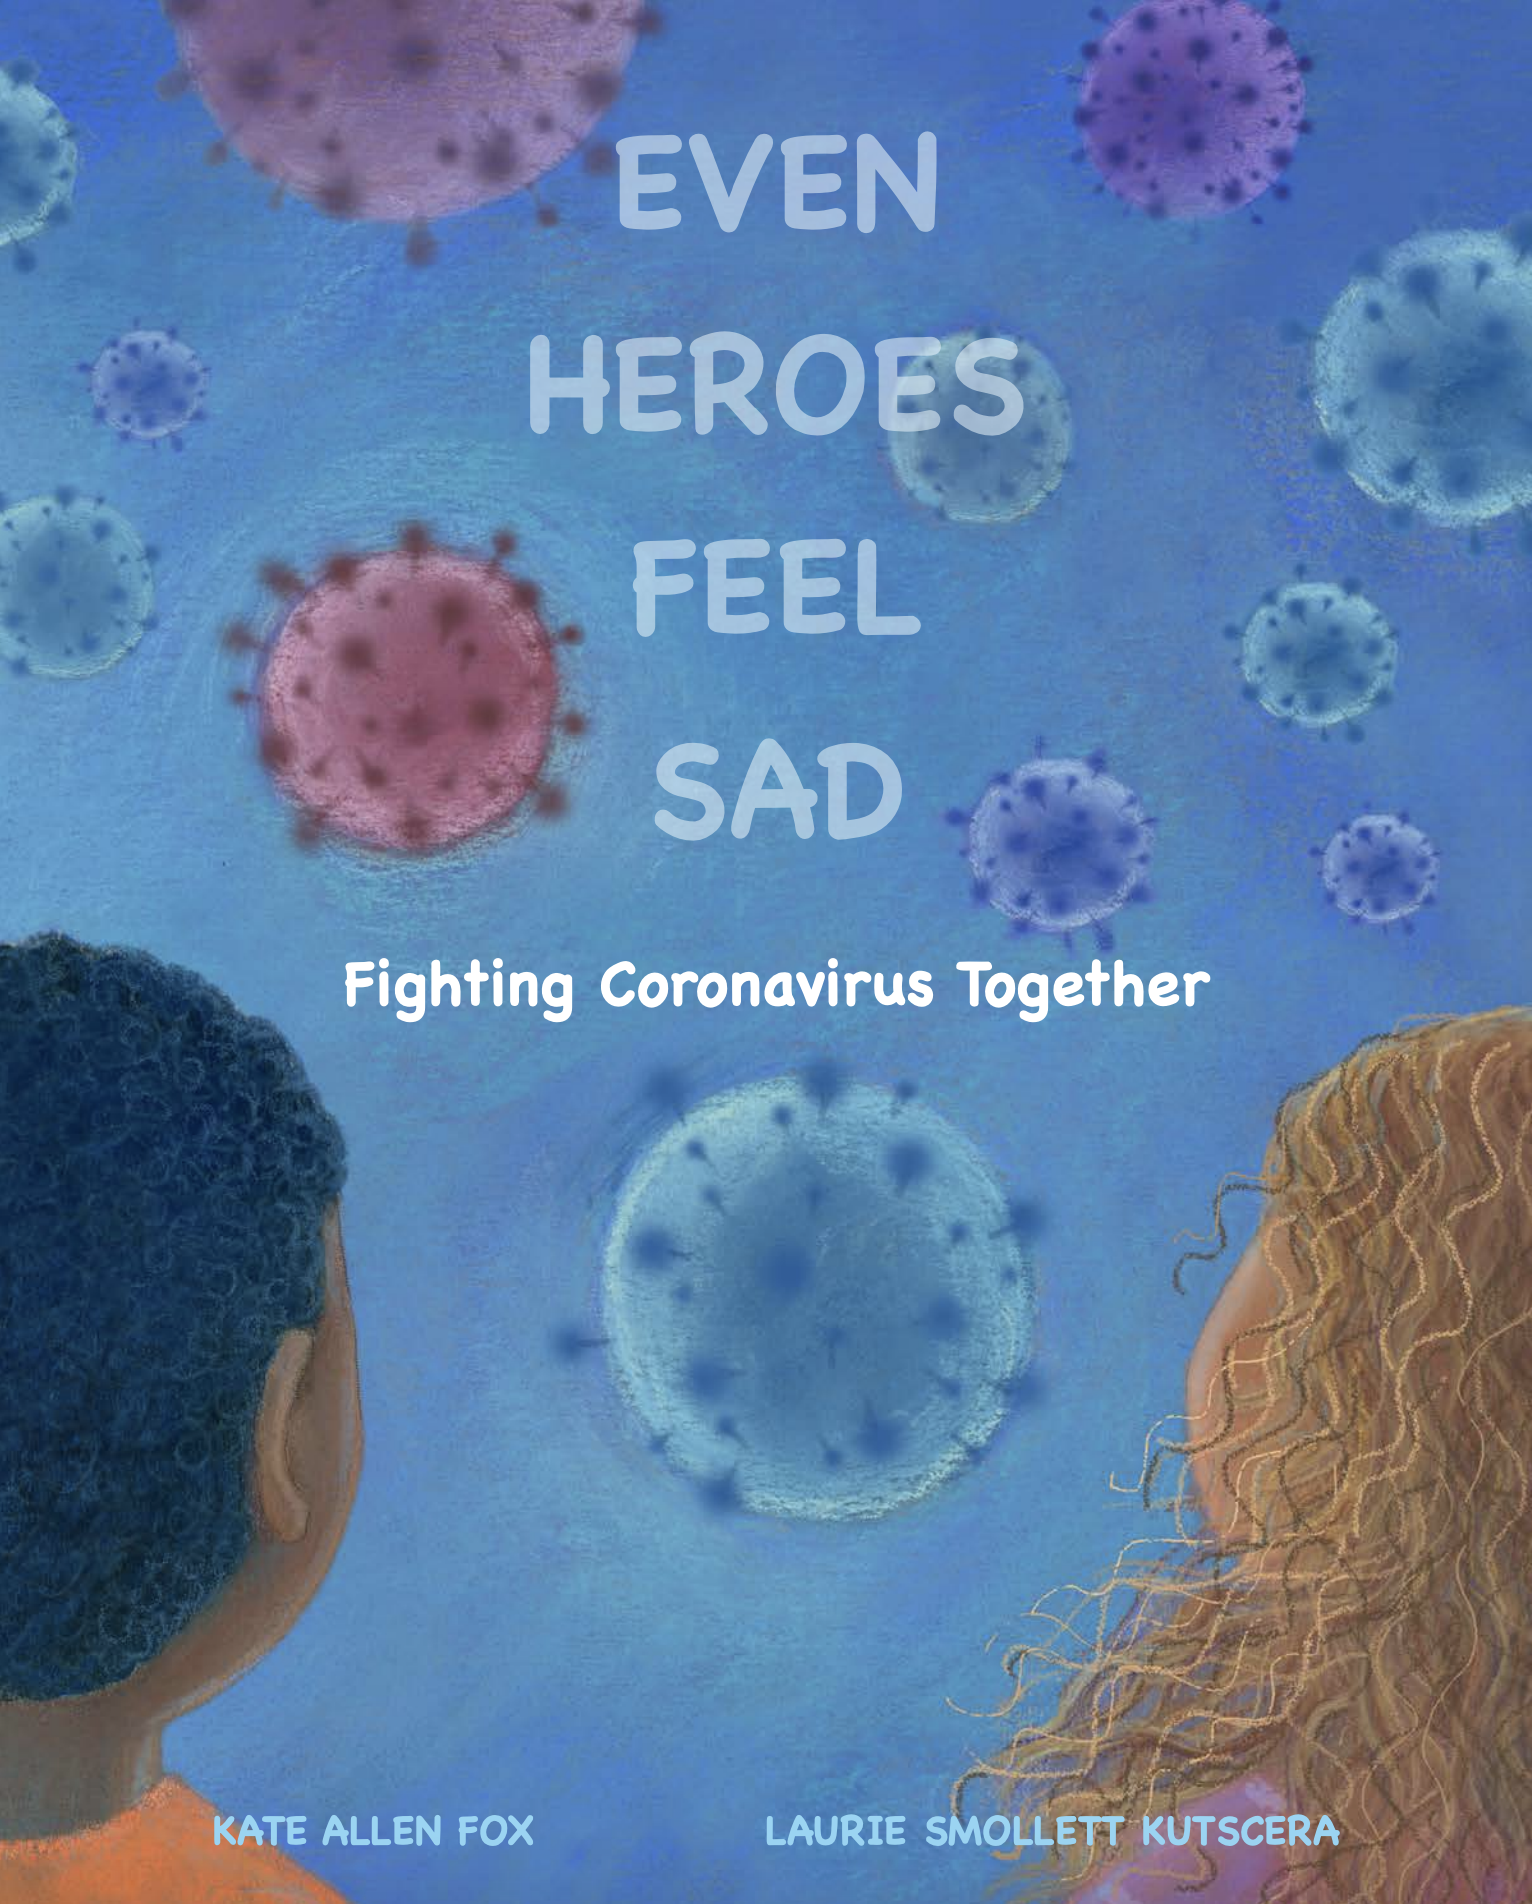 Even Heroes Feel Sad: Fighting Coronavirus Together